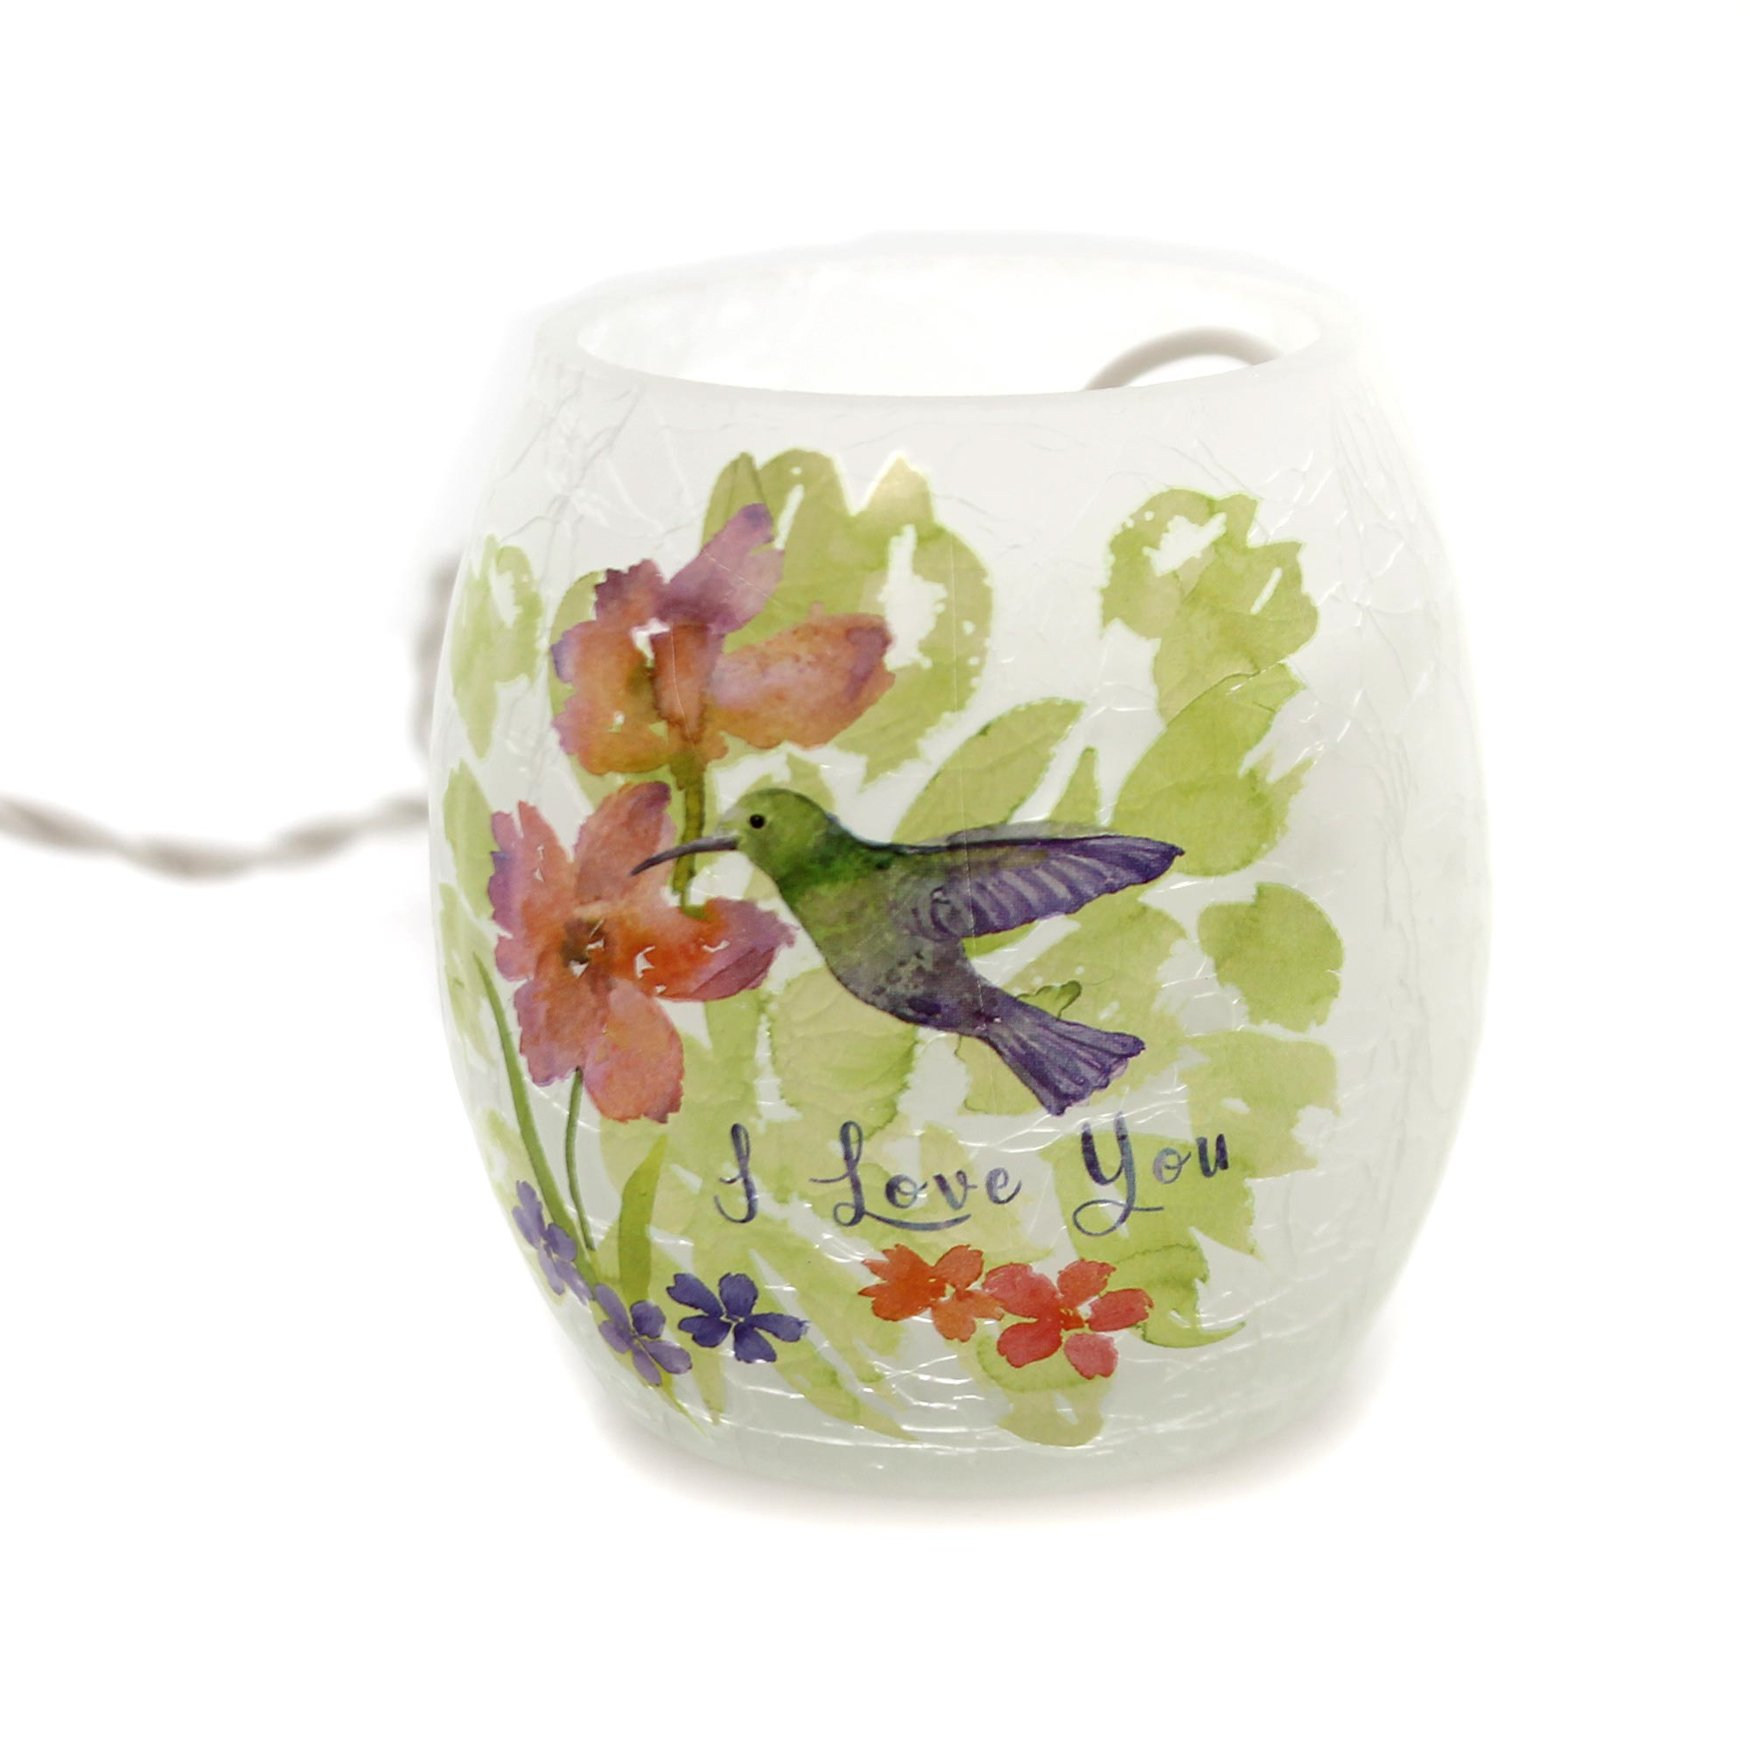 Stony Creek I LOVE YOU LIGHTED GLASS JAR Glass Mom Mothers Day Ply8252 A